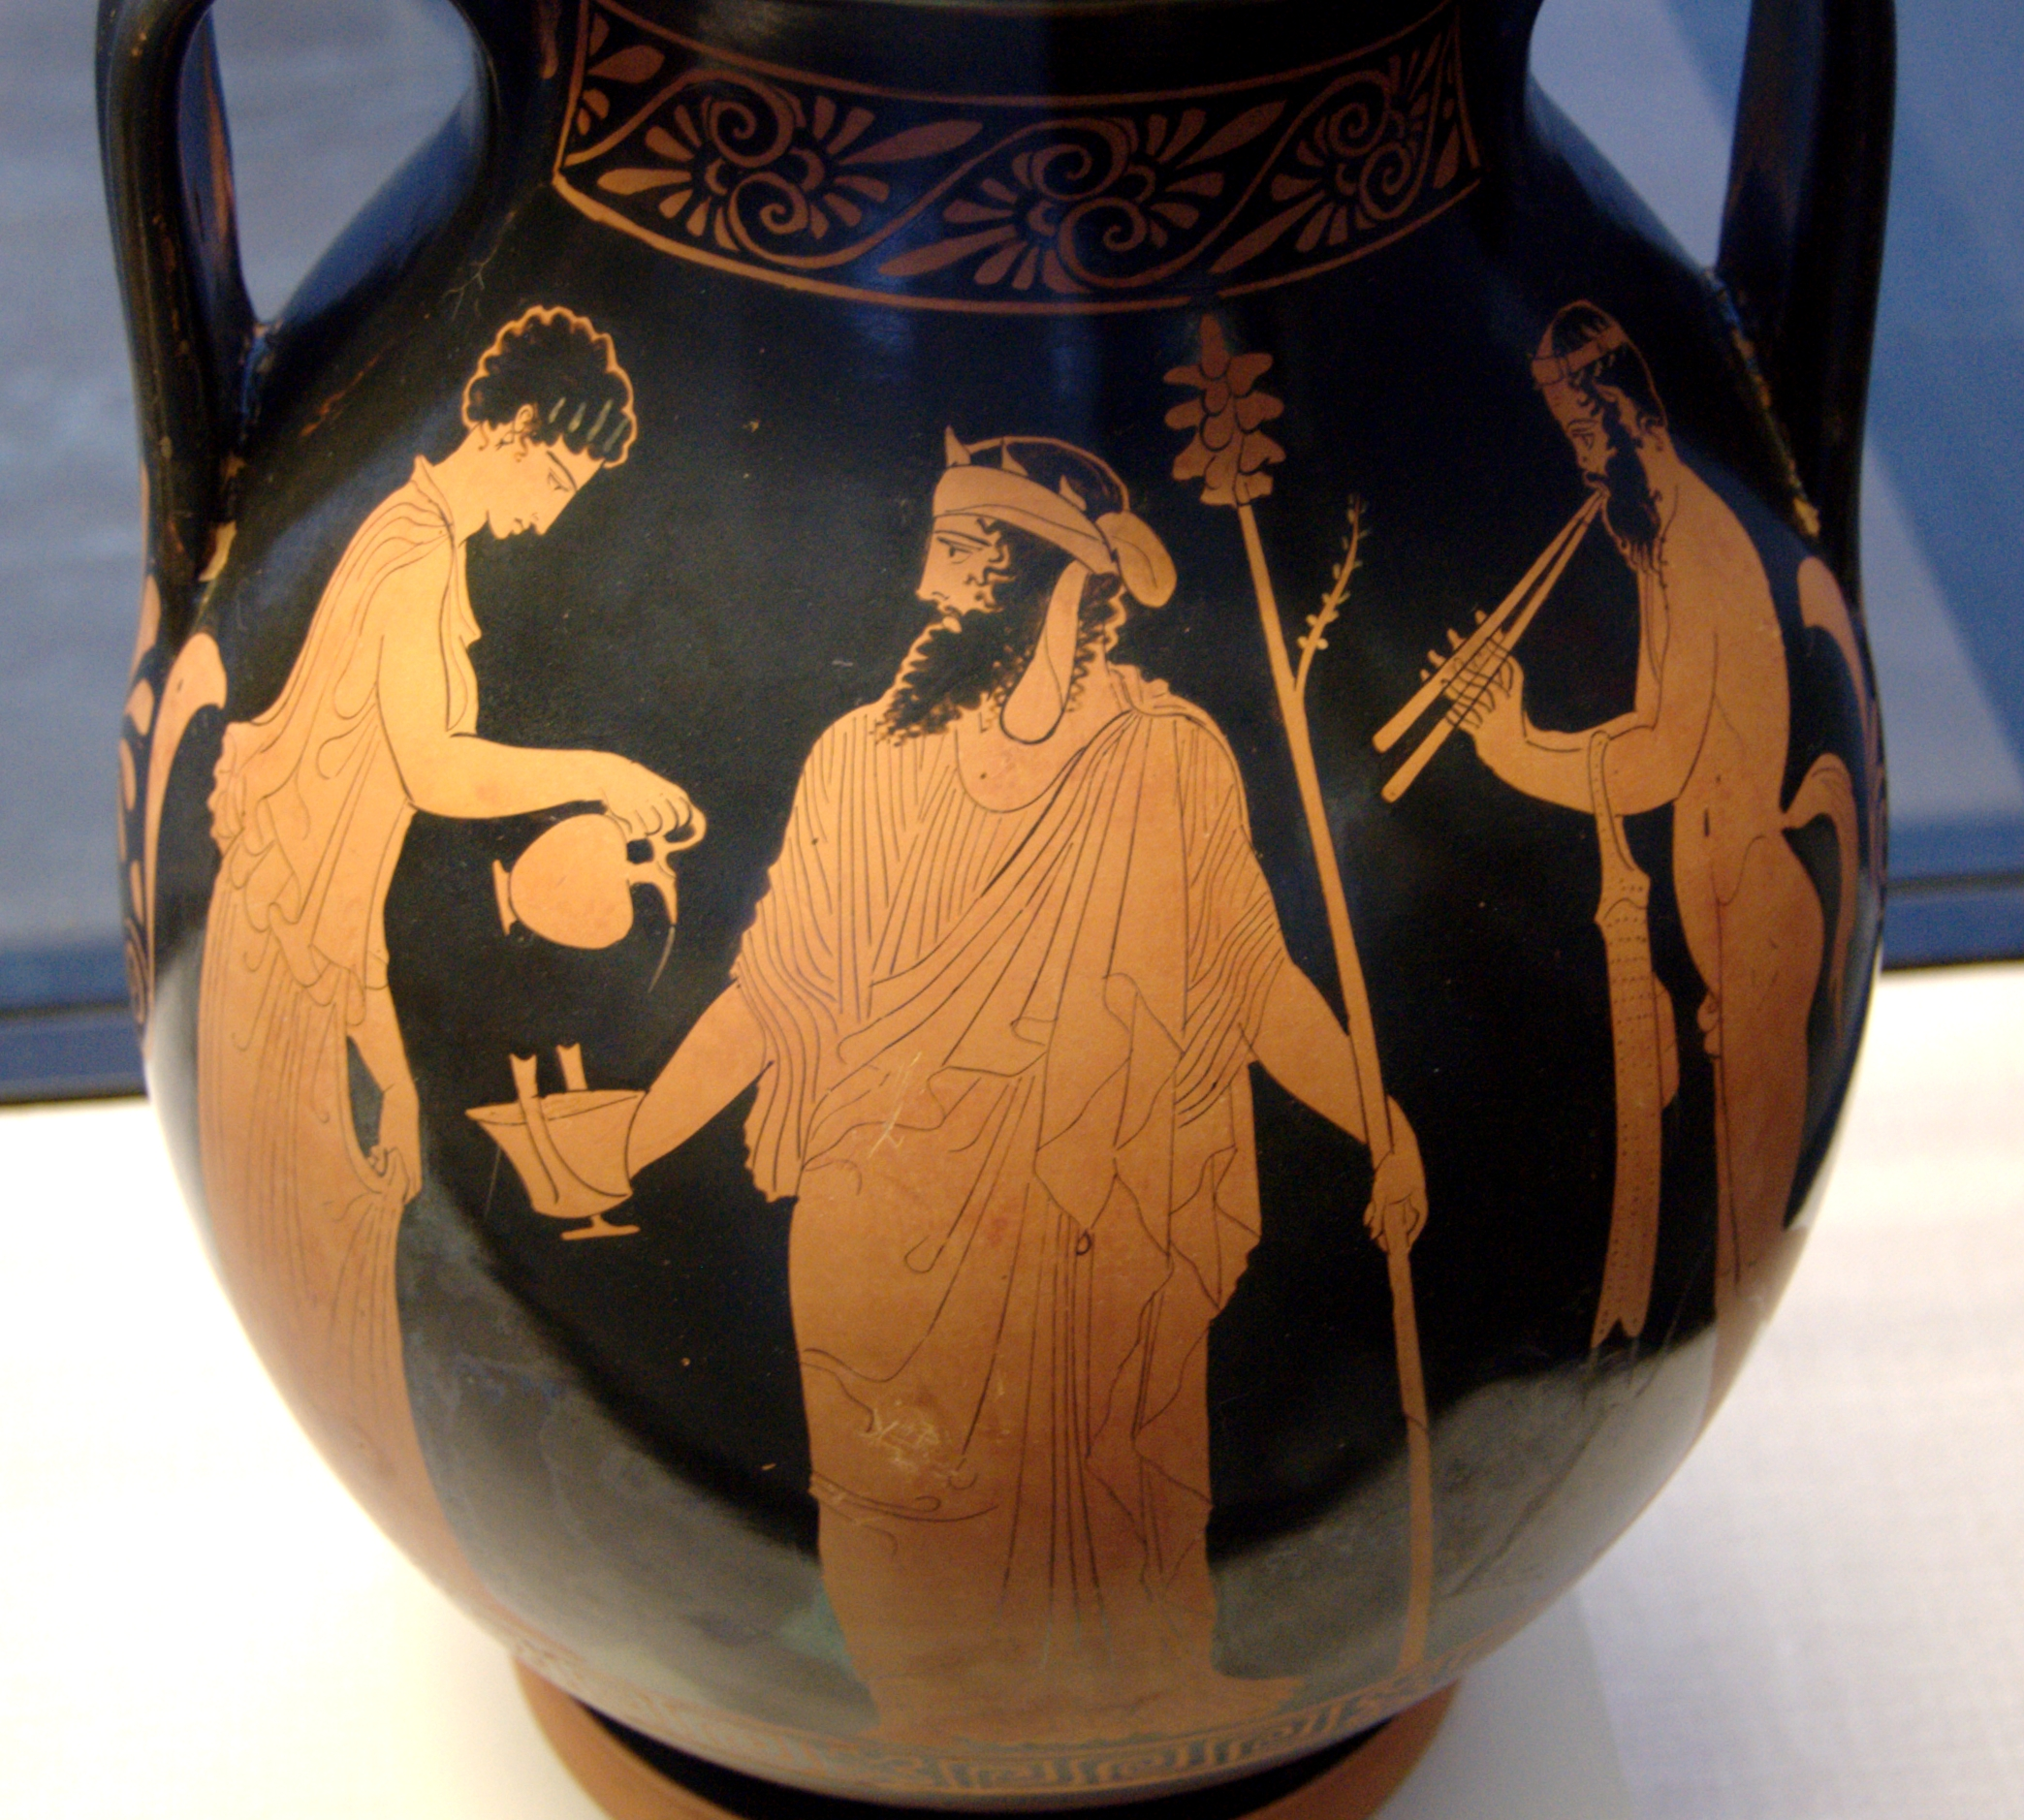 https://upload.wikimedia.org/wikipedia/commons/6/60/Libation_Dionysos_Staatliche_Antikensammlungen_2359.jpg